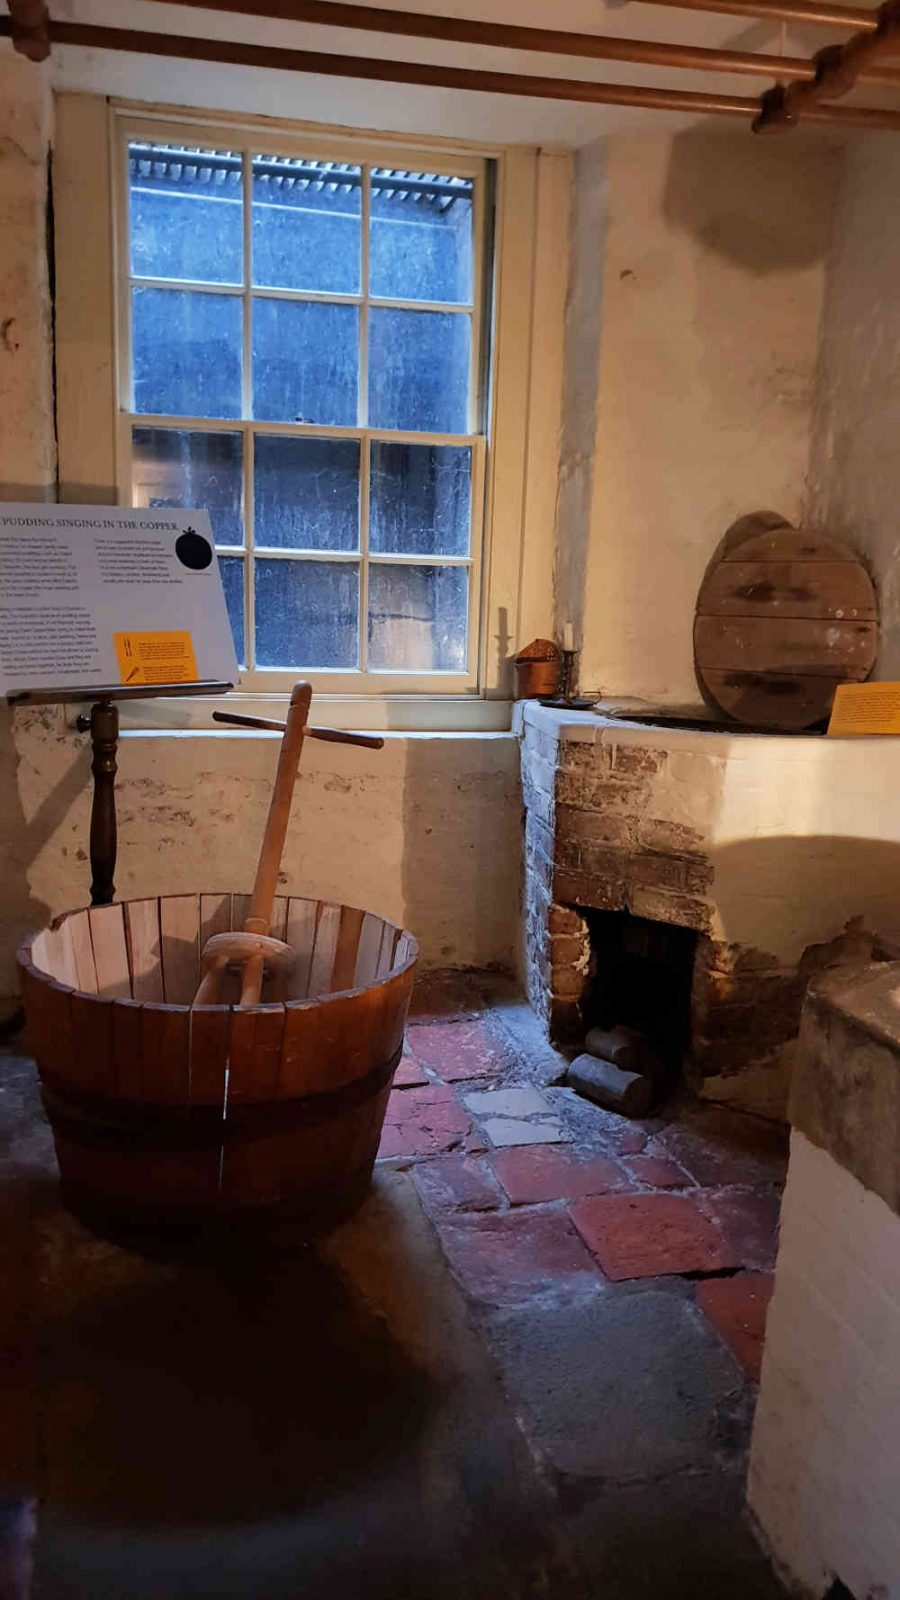 dickens museum food glorious food, dinner with dickens, Dickens museum christmas 2018, dickens museum food, washroom